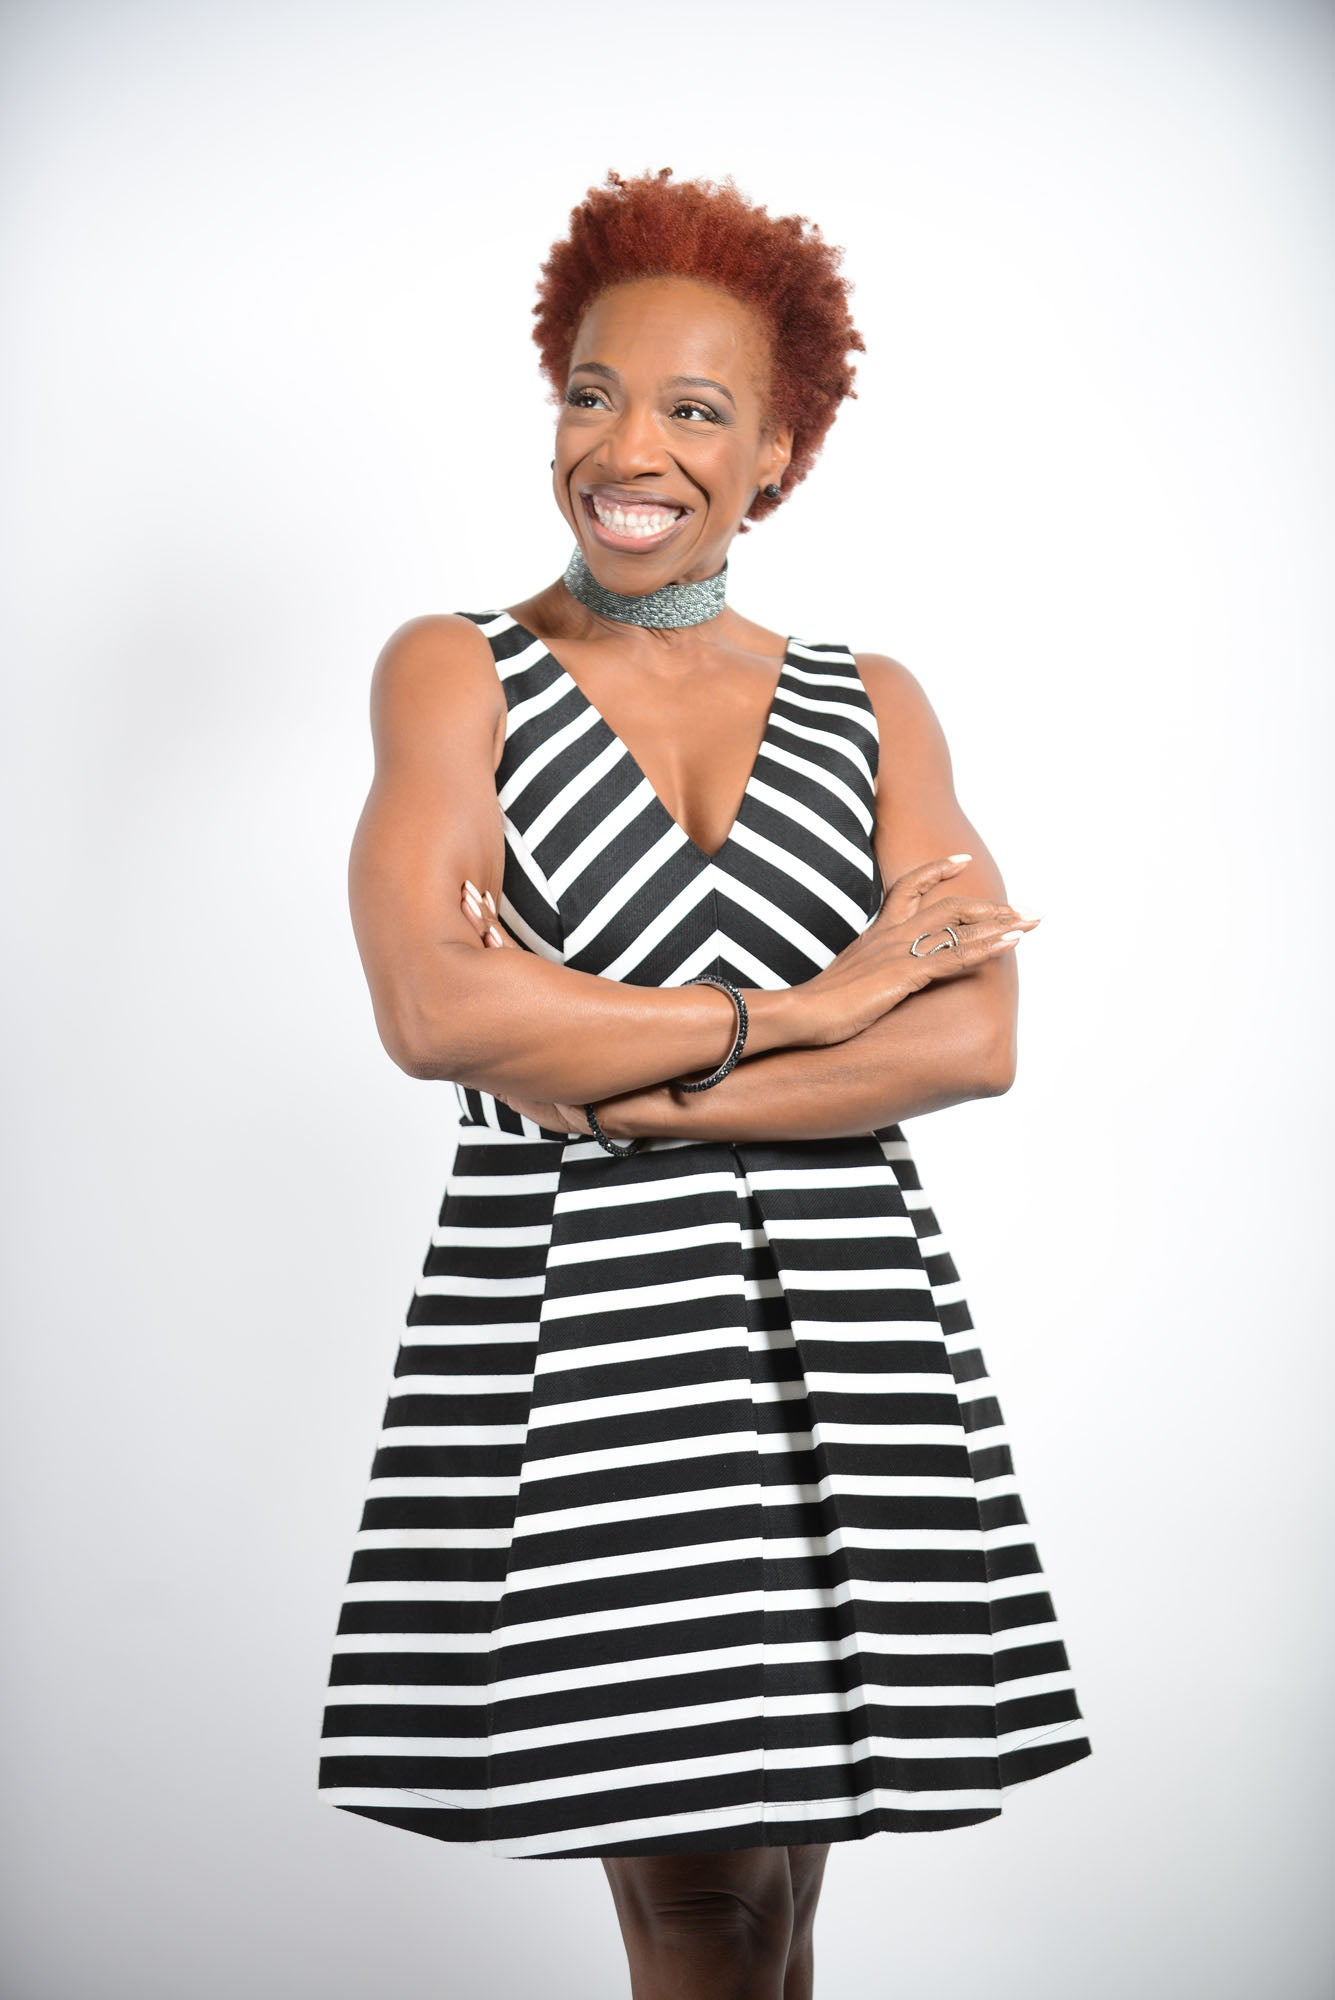 Get Your Abundance With Motivational Speaker Lisa Nichols' Five Steps